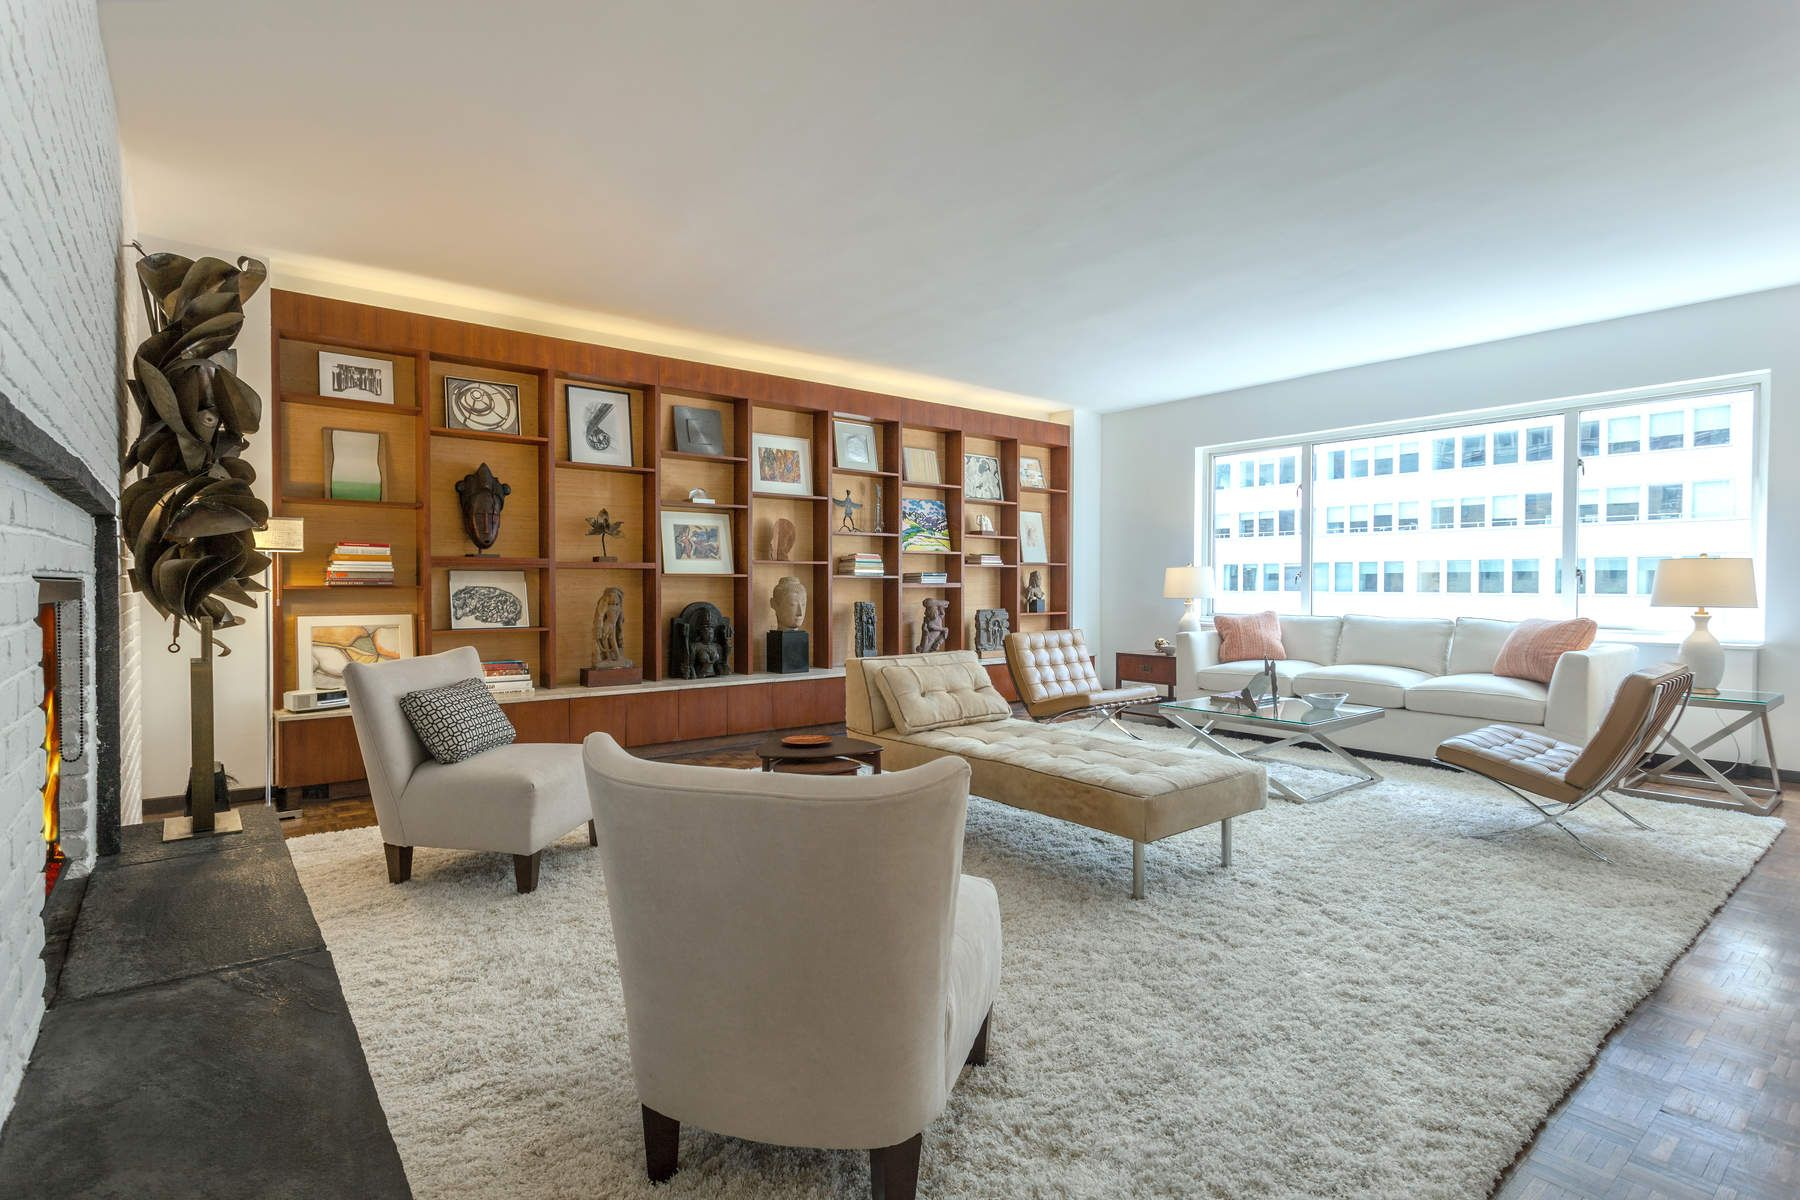 Co-op for Sale at 475 Park Avenue, Apt. 15A 475 Park Avenue Apt 15A, Midtown East, New York, New York, 10022 United States